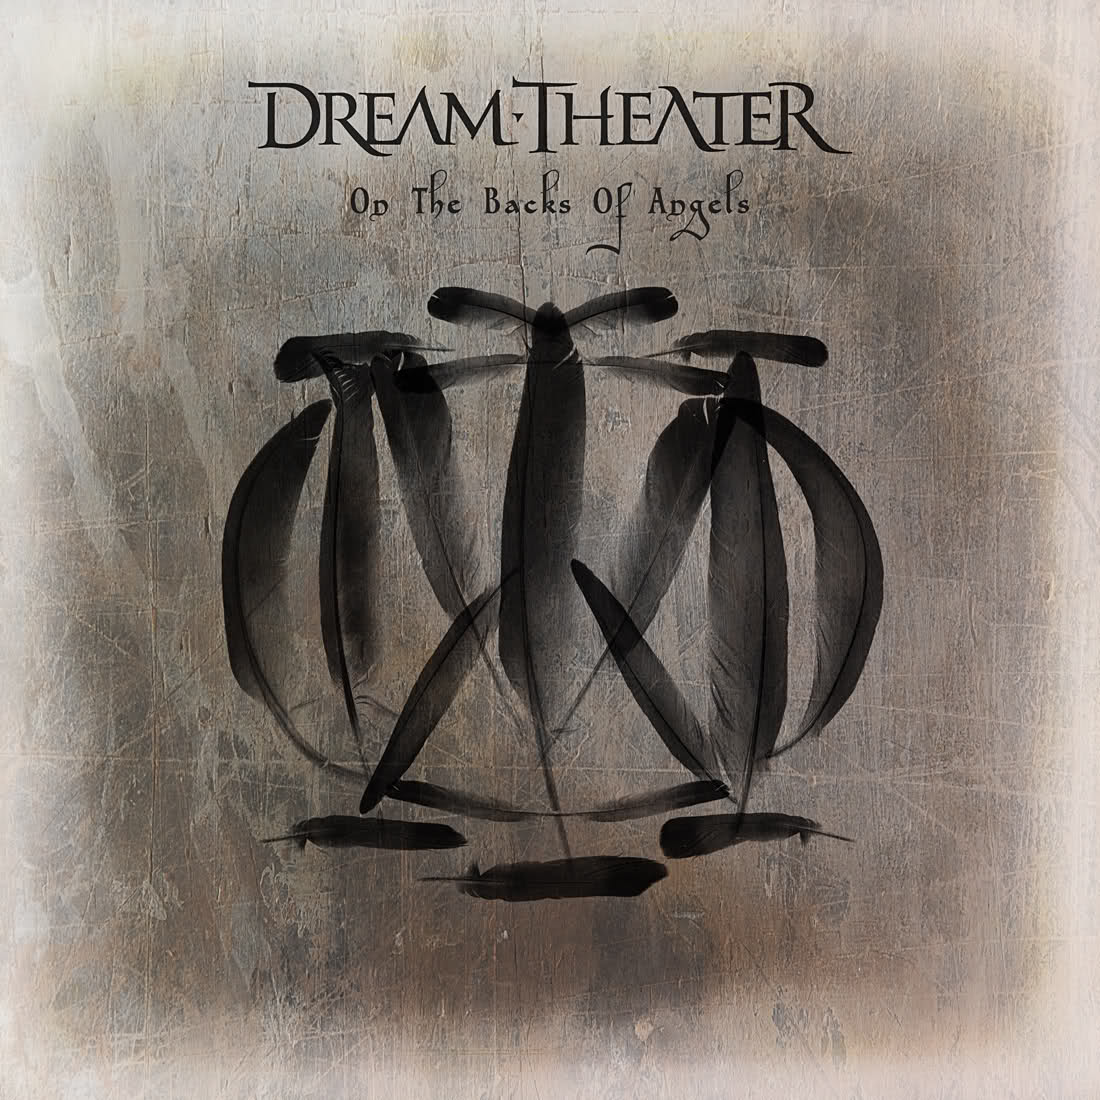 Dream Theater On The Back Of Angels